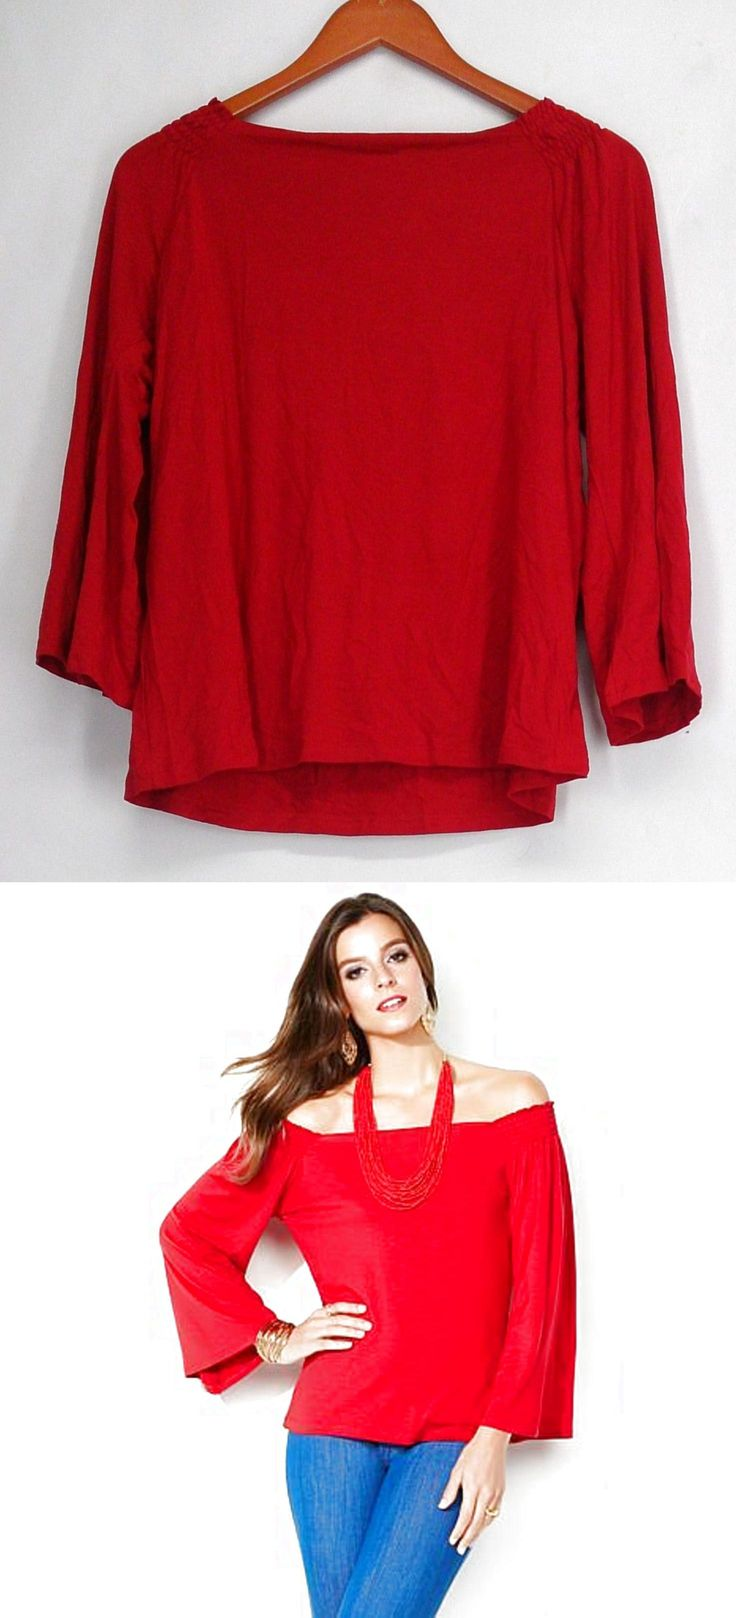 Iman Top M Smocked Bell Sleeve Jersey Knit Convertible Top Red NEW $3.99